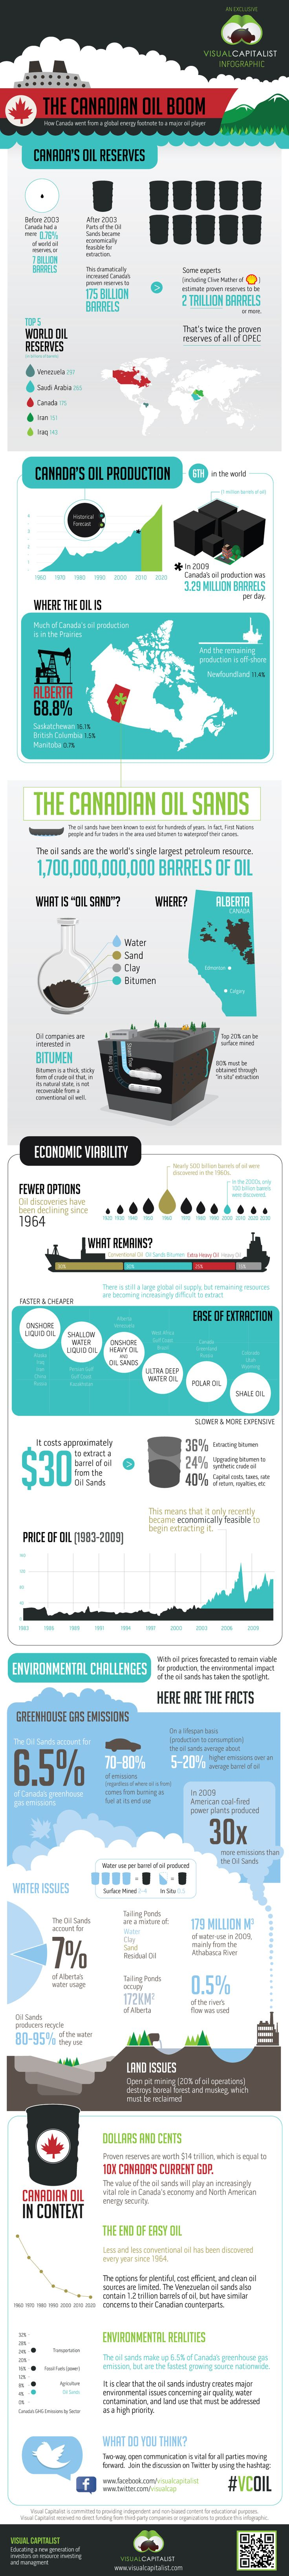 The Canadian Oil Boom: How Canada went from a global energy footnote to a major oil player http://www.visualcapitalist.com/portfolio/the-canadian-oil-boom-oil-sands-intro